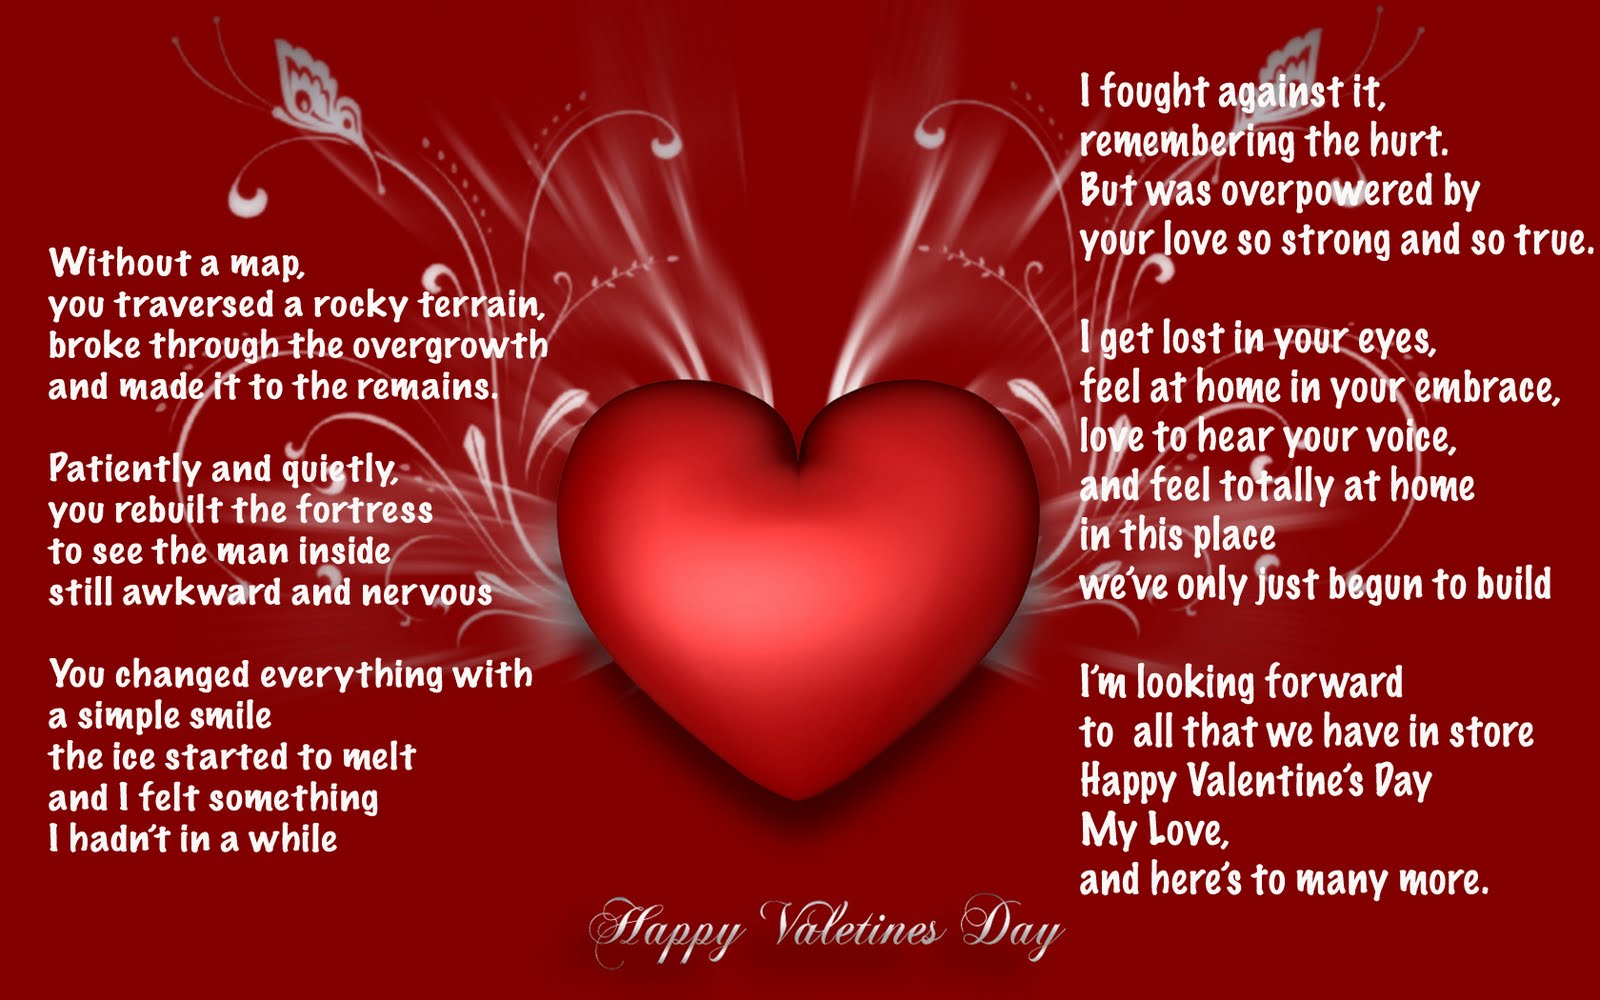 Happy Valentines Day My Love. 1600 x 1000.Valentine's Day Video Text Messages